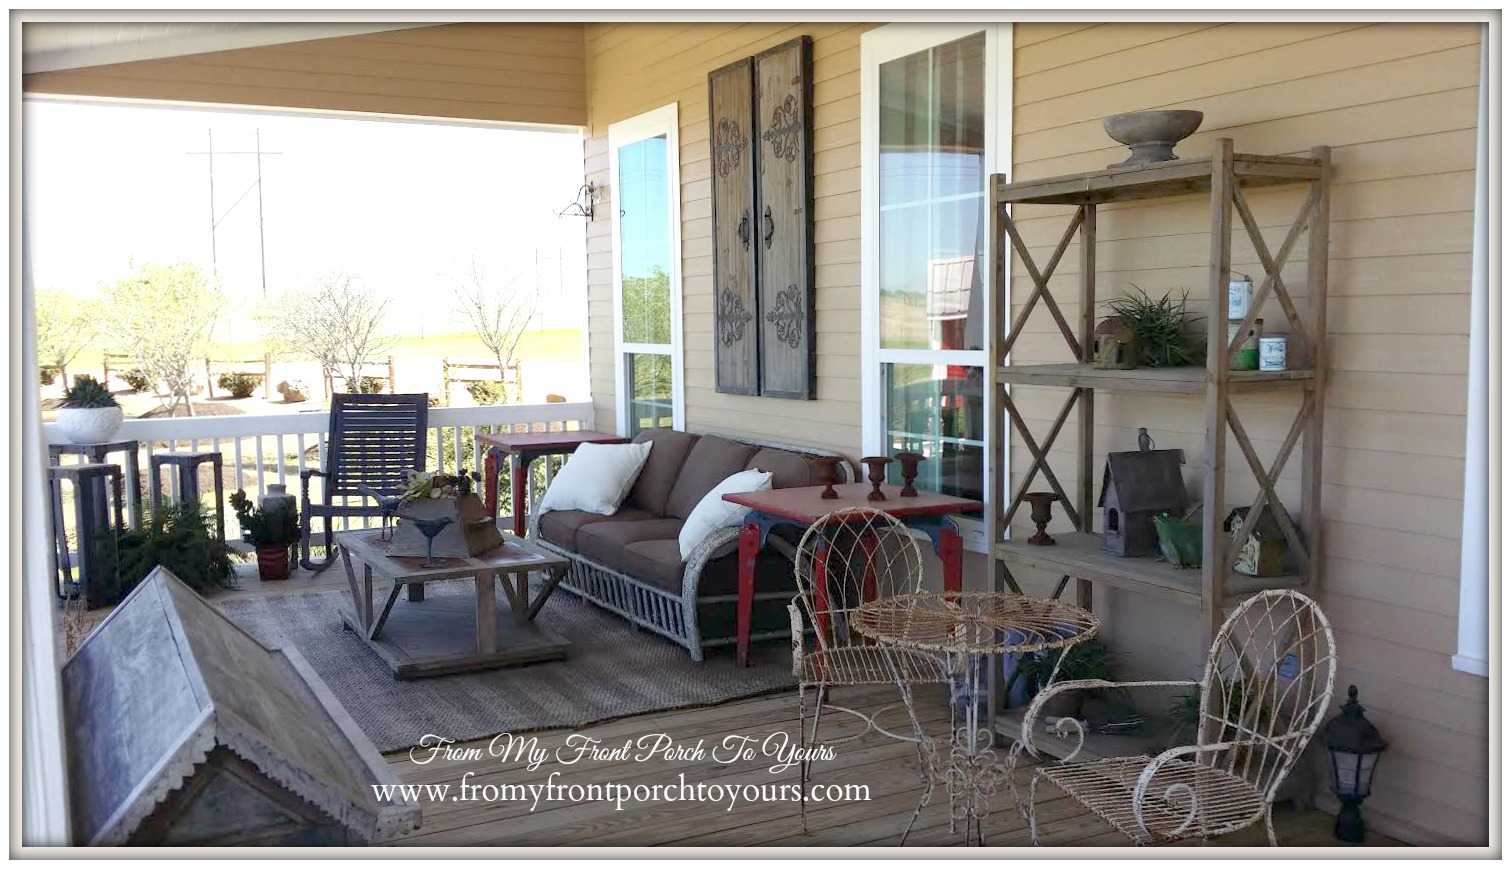 Texas Farmhouse Porch-RoundTop Texas-Trendmaker Homes-From My Front Porch To Yours